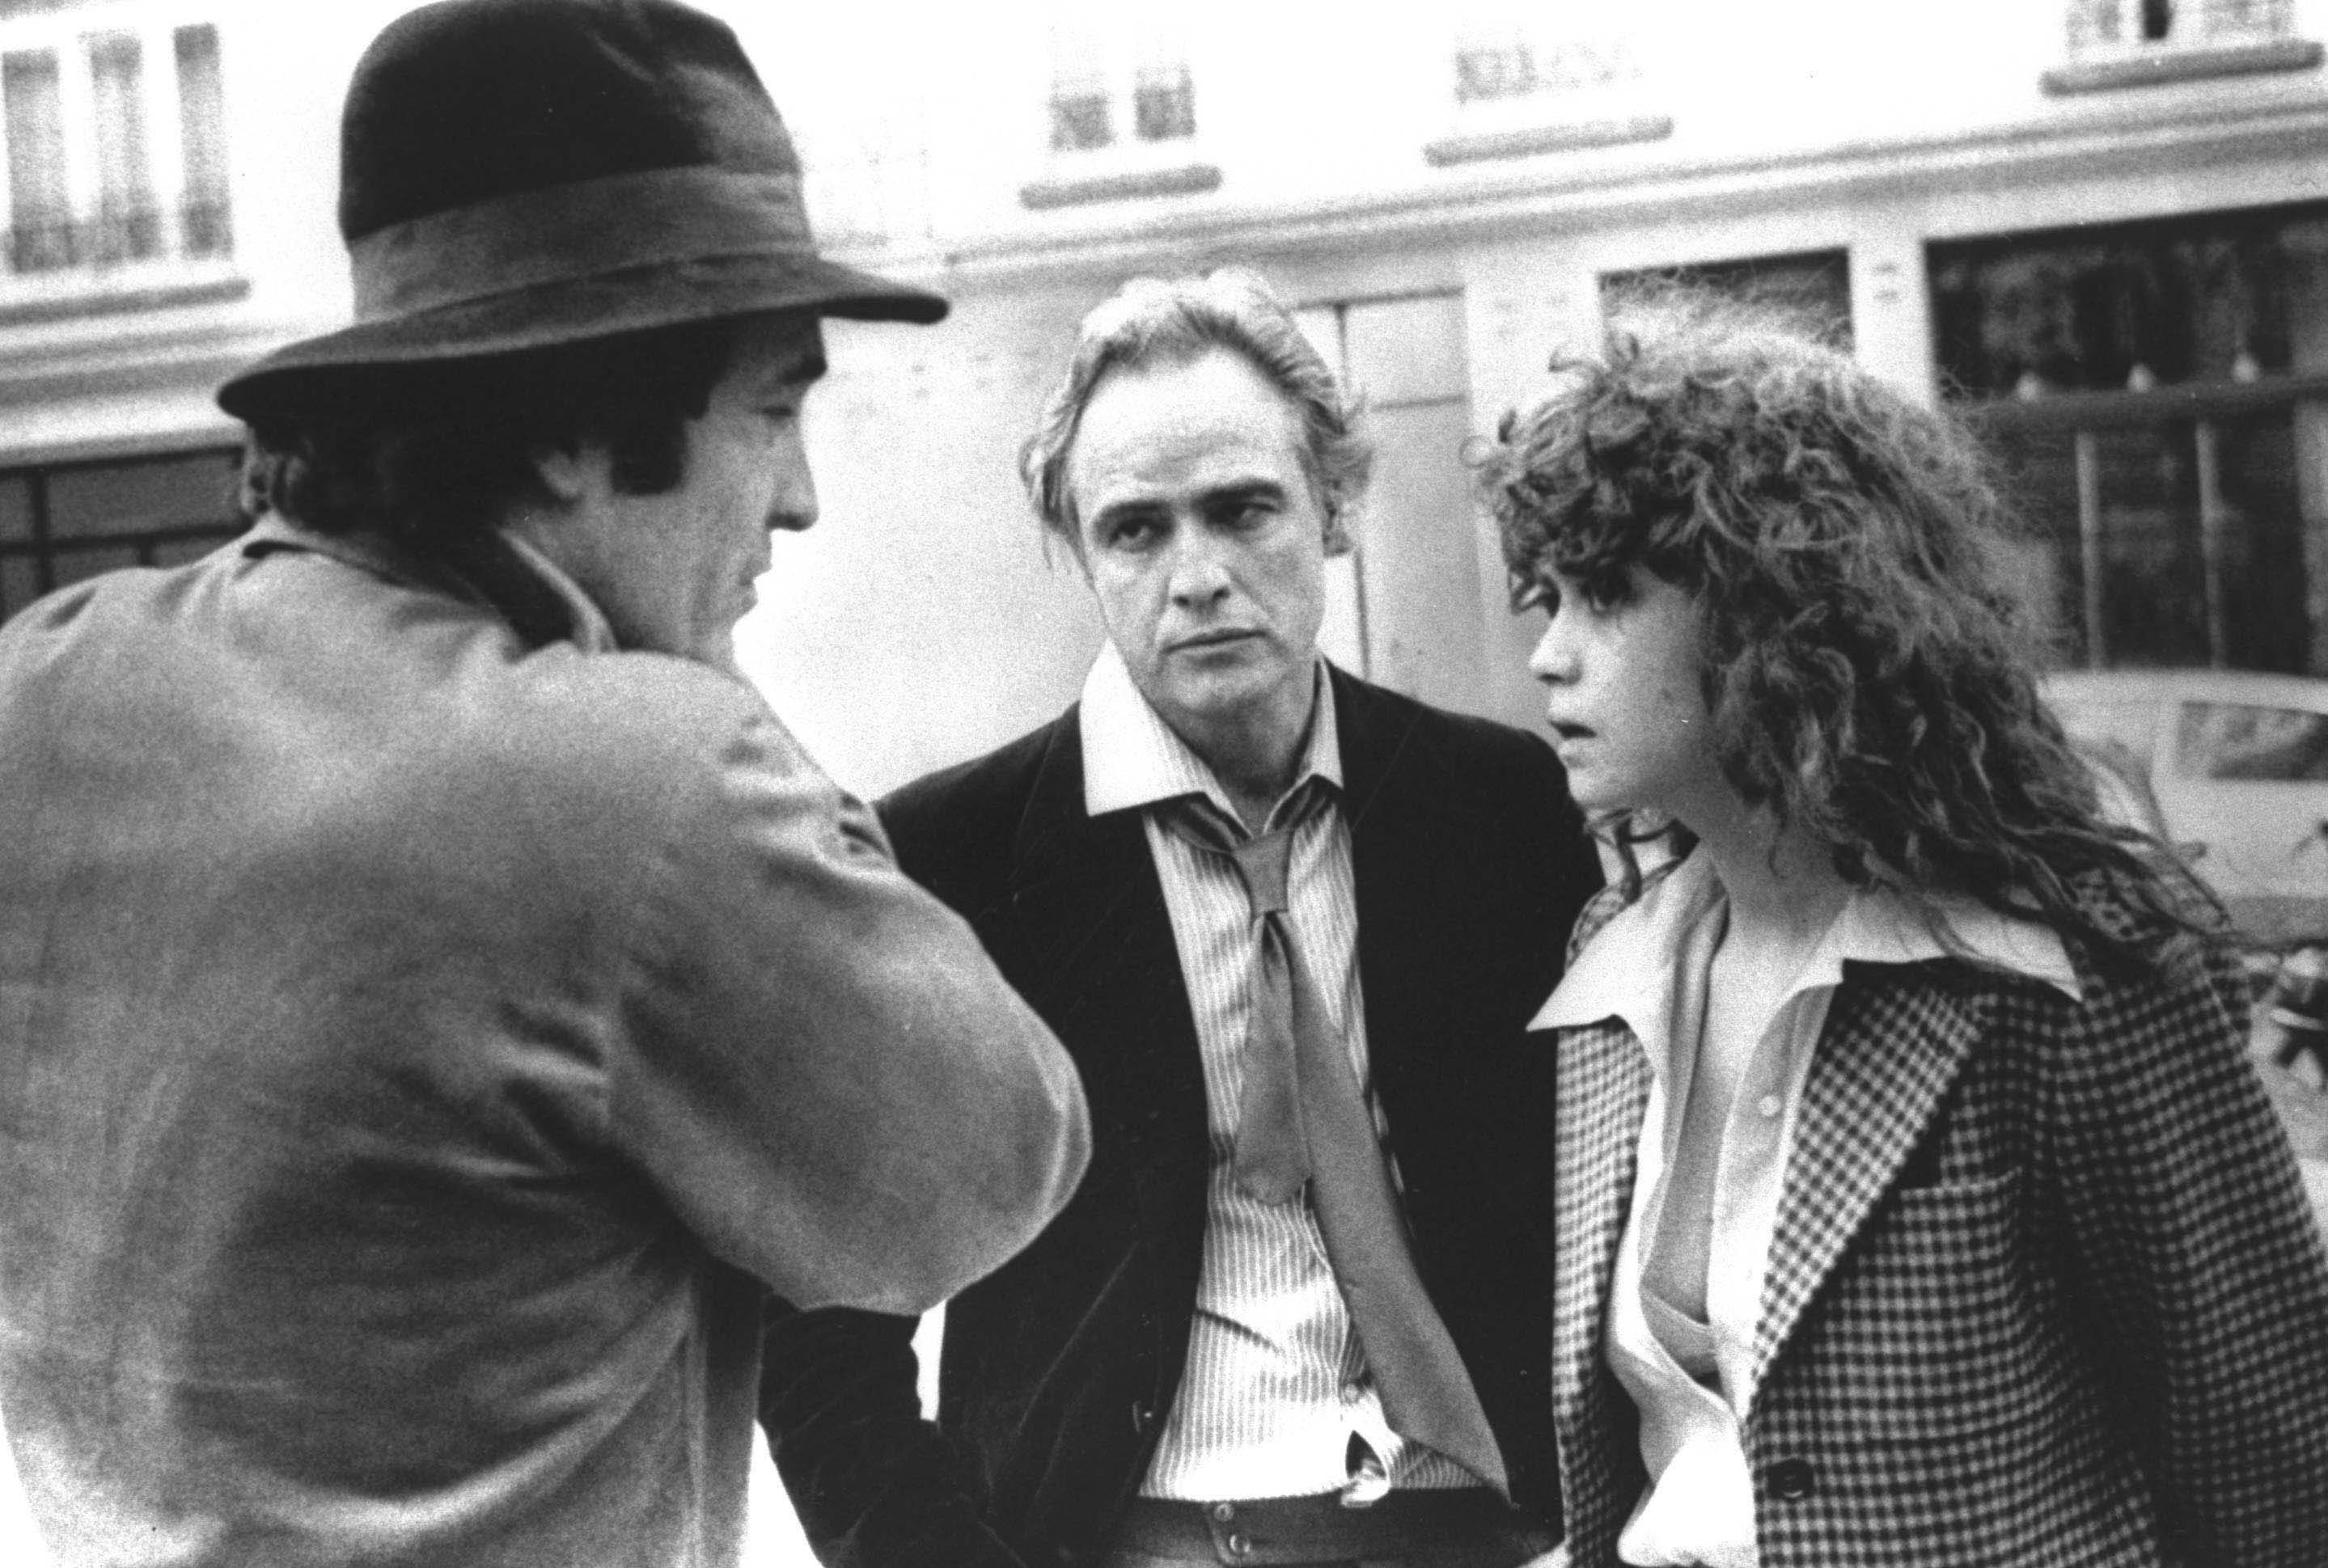 Director Bernardo Bertolucci, left, discusses a scene from  Last Tango in Paris  with leading actor Marlon Brando and actress Maria Schneider during location shooting in Paris.